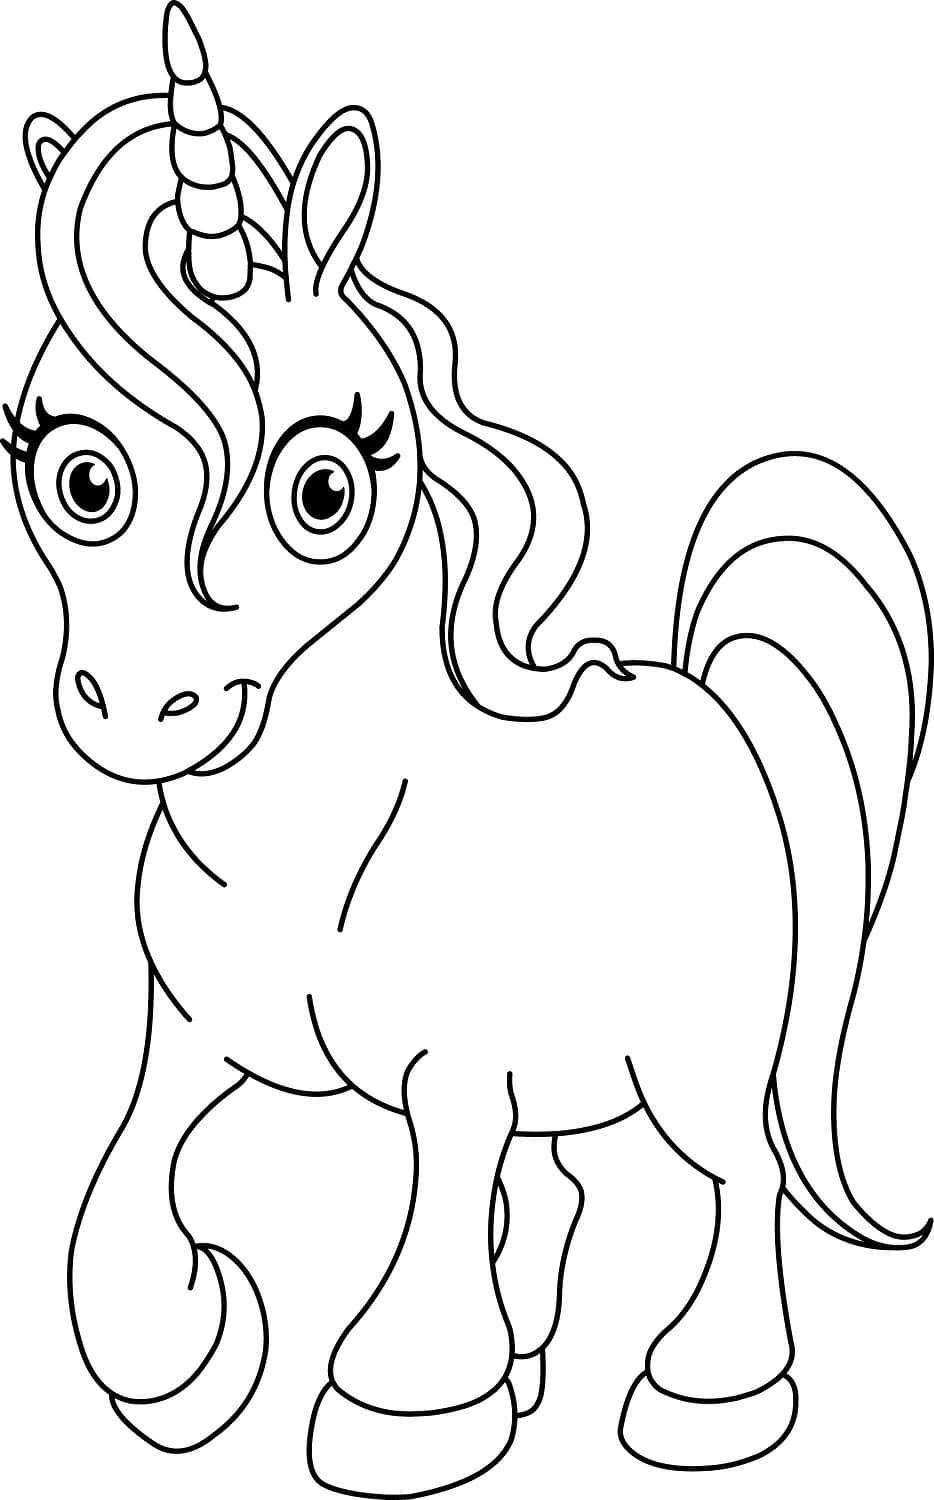 Pyjamasque Coloriage | Unicorn coloring pages, Horse ...